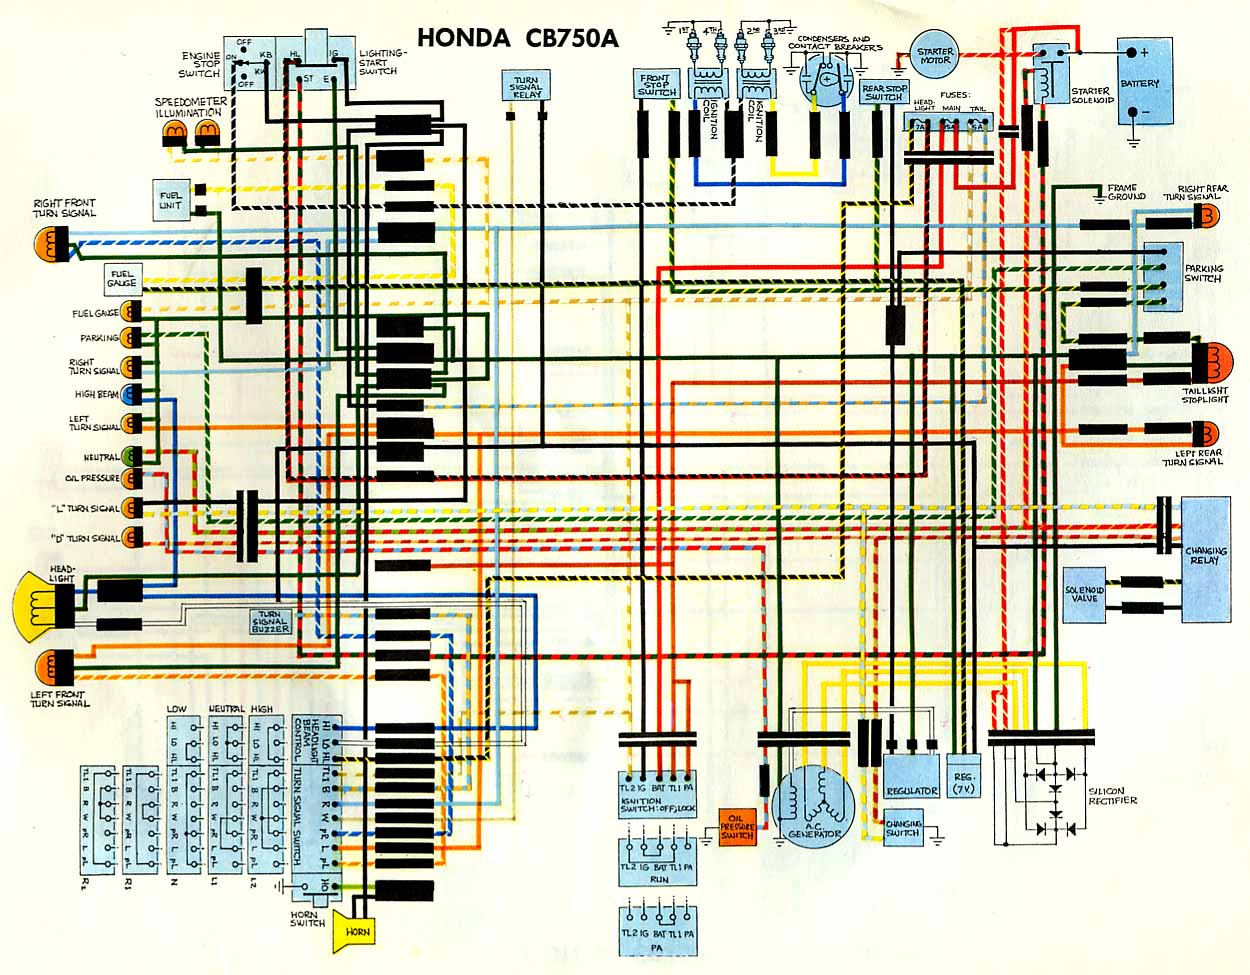 Wiring Diagrams - Honda cb750 wiring diagram